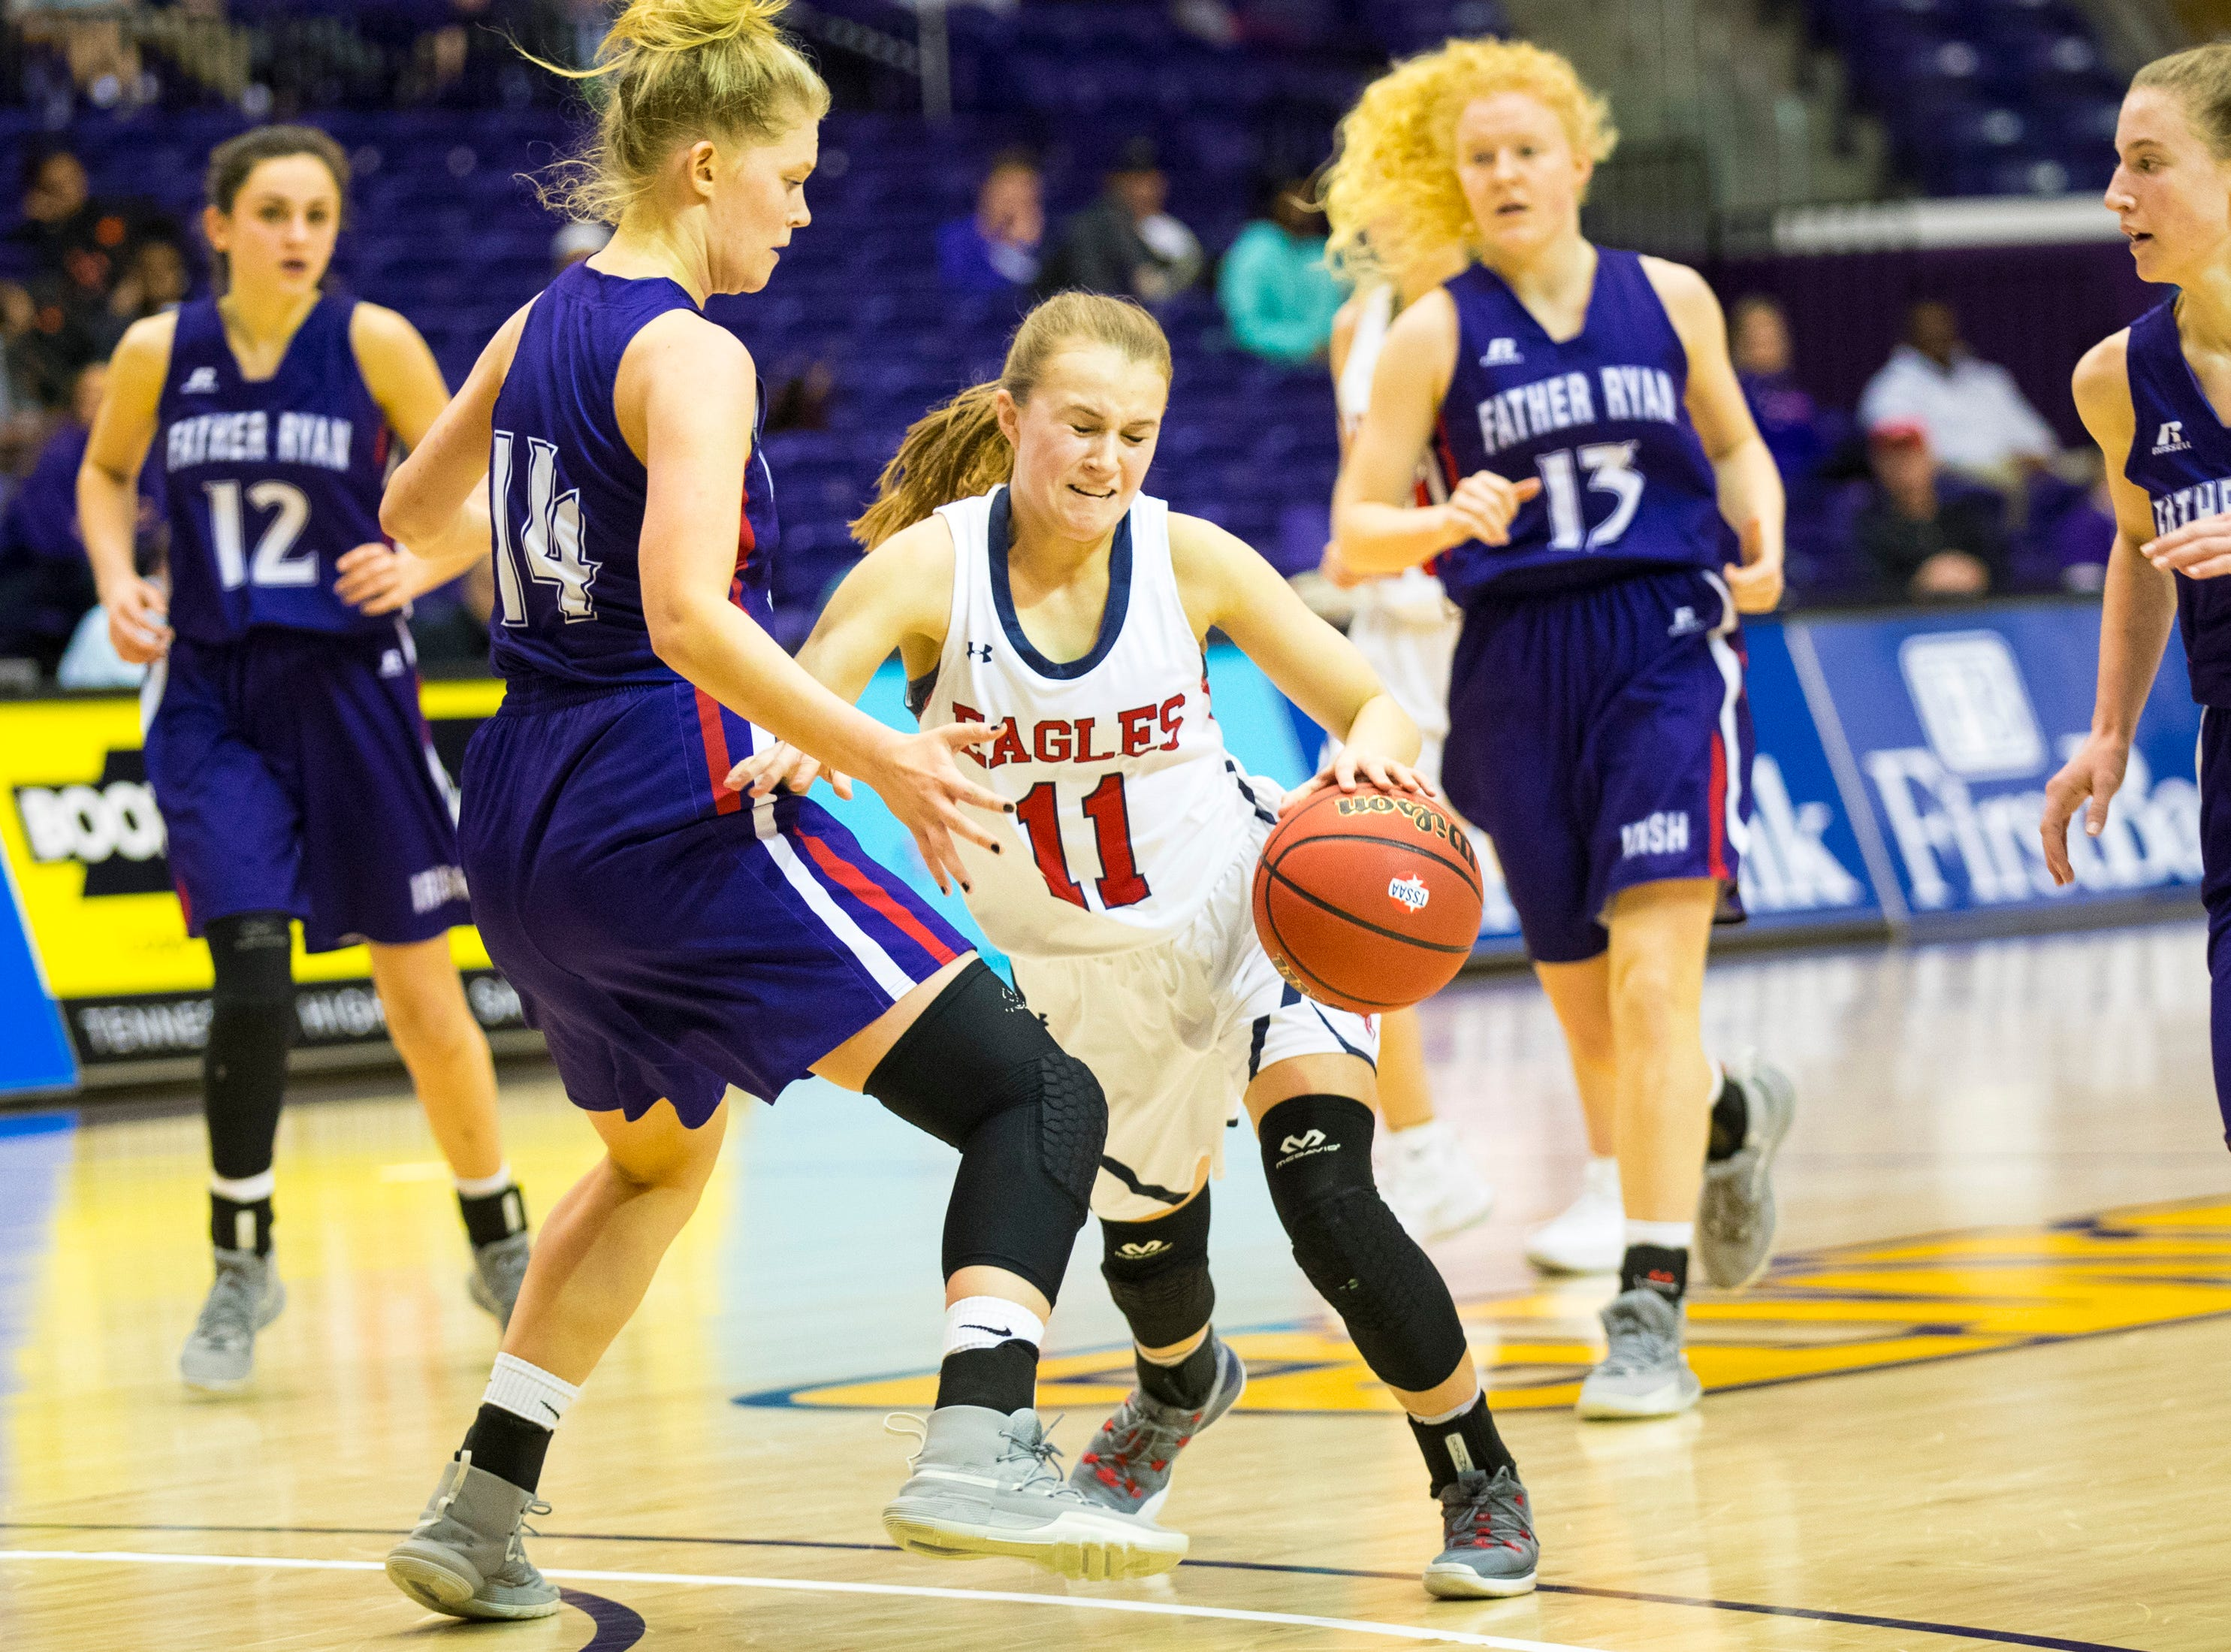 Brentwood Academy's Millie Brown (11) makes contact with Father Ryan's Bree Thibeault (14) during Brentwood Academy's game against Father Ryan in the semifinal round of the TSSAA Division II Class AA State Championships at Lipscomb University's Allen Arena in Nashville on Thursday, Feb. 28, 2019.